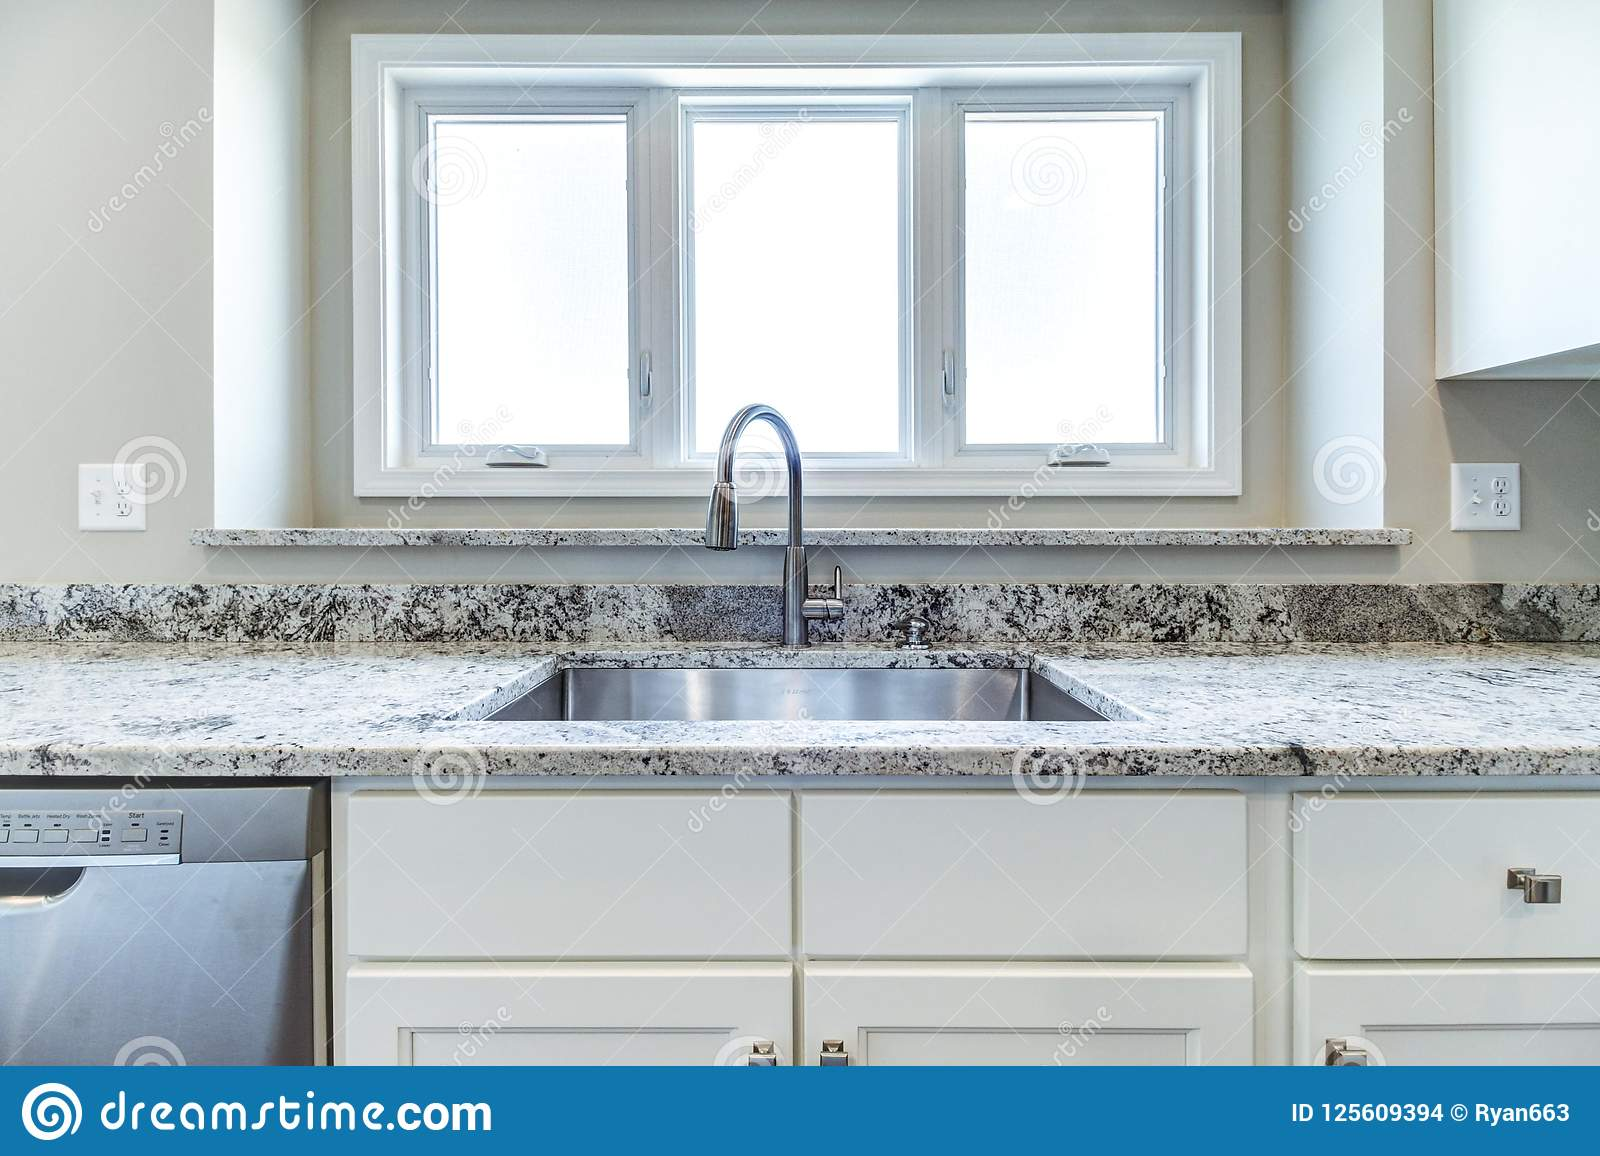 Bright And Contemporary Kitchen Sink Stock Photo Image Of Nice Windows 125609394